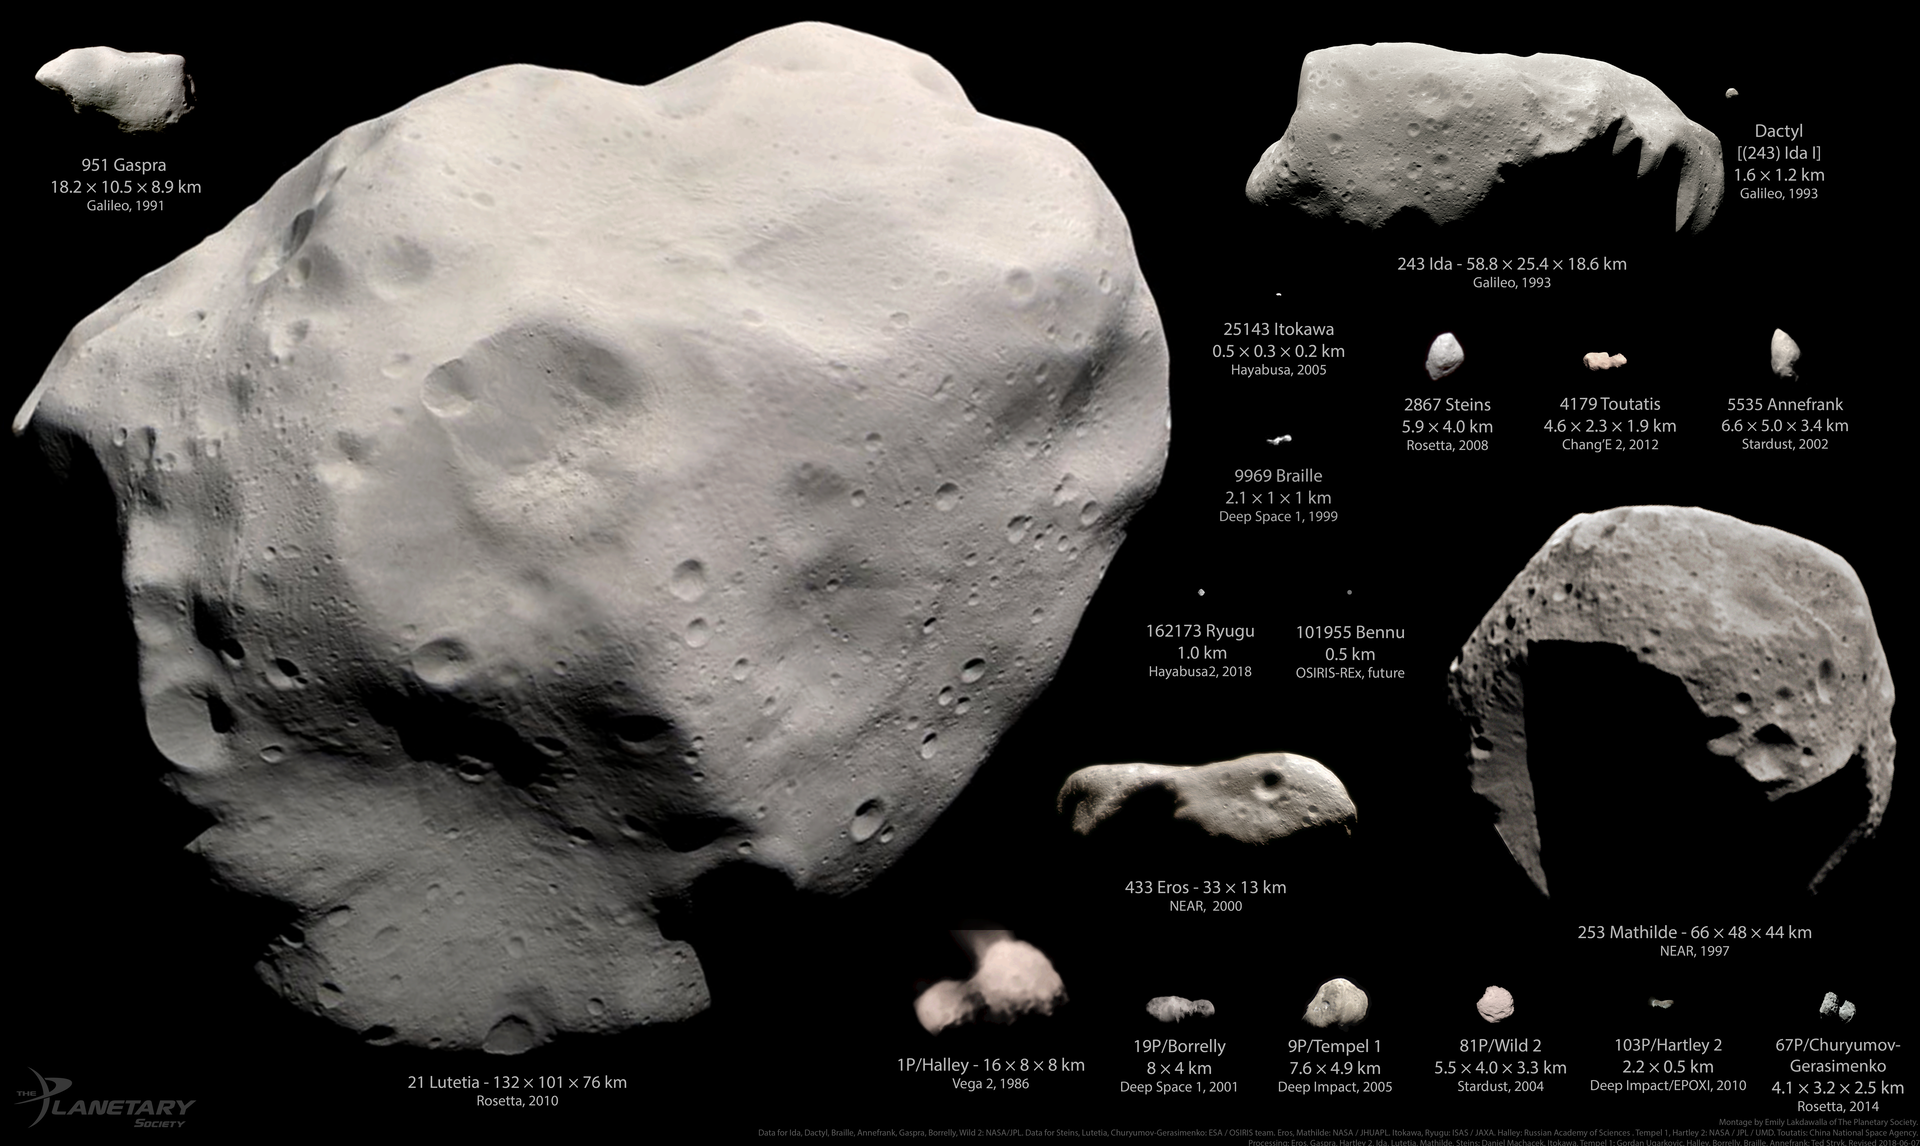 Asteroids and comets visited by spacecraft